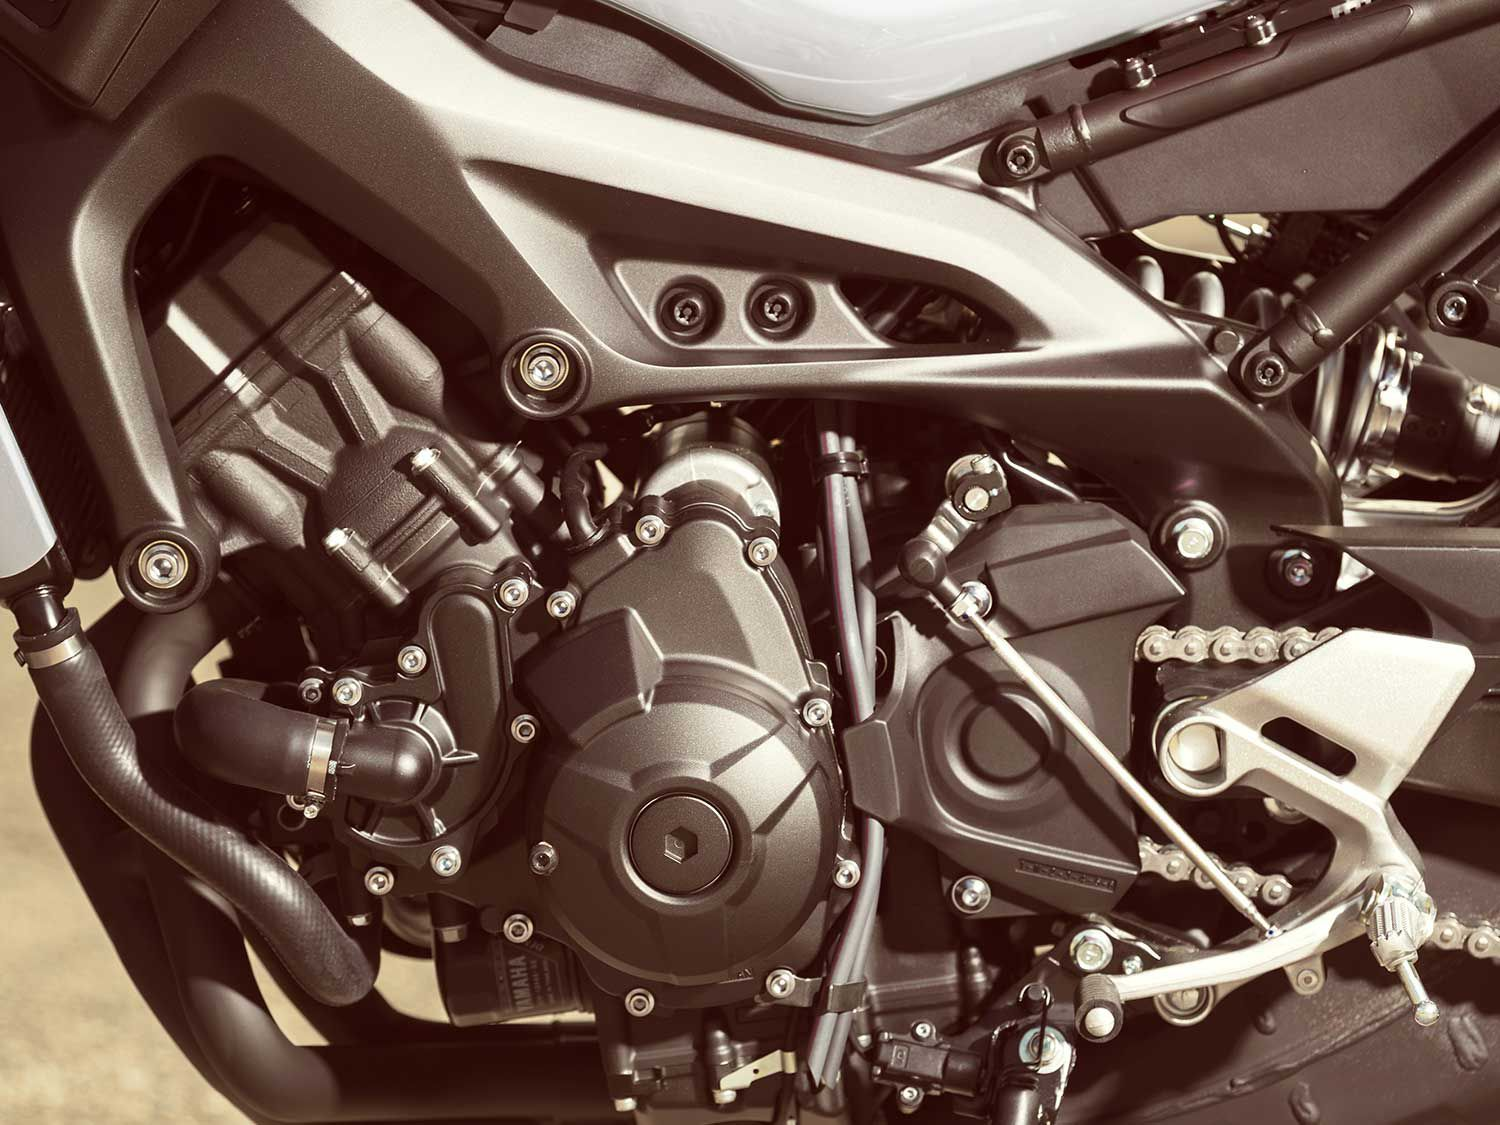 The heart of the XSR900 is its 847cc inline-triple powerplant derived from the FZ-09.